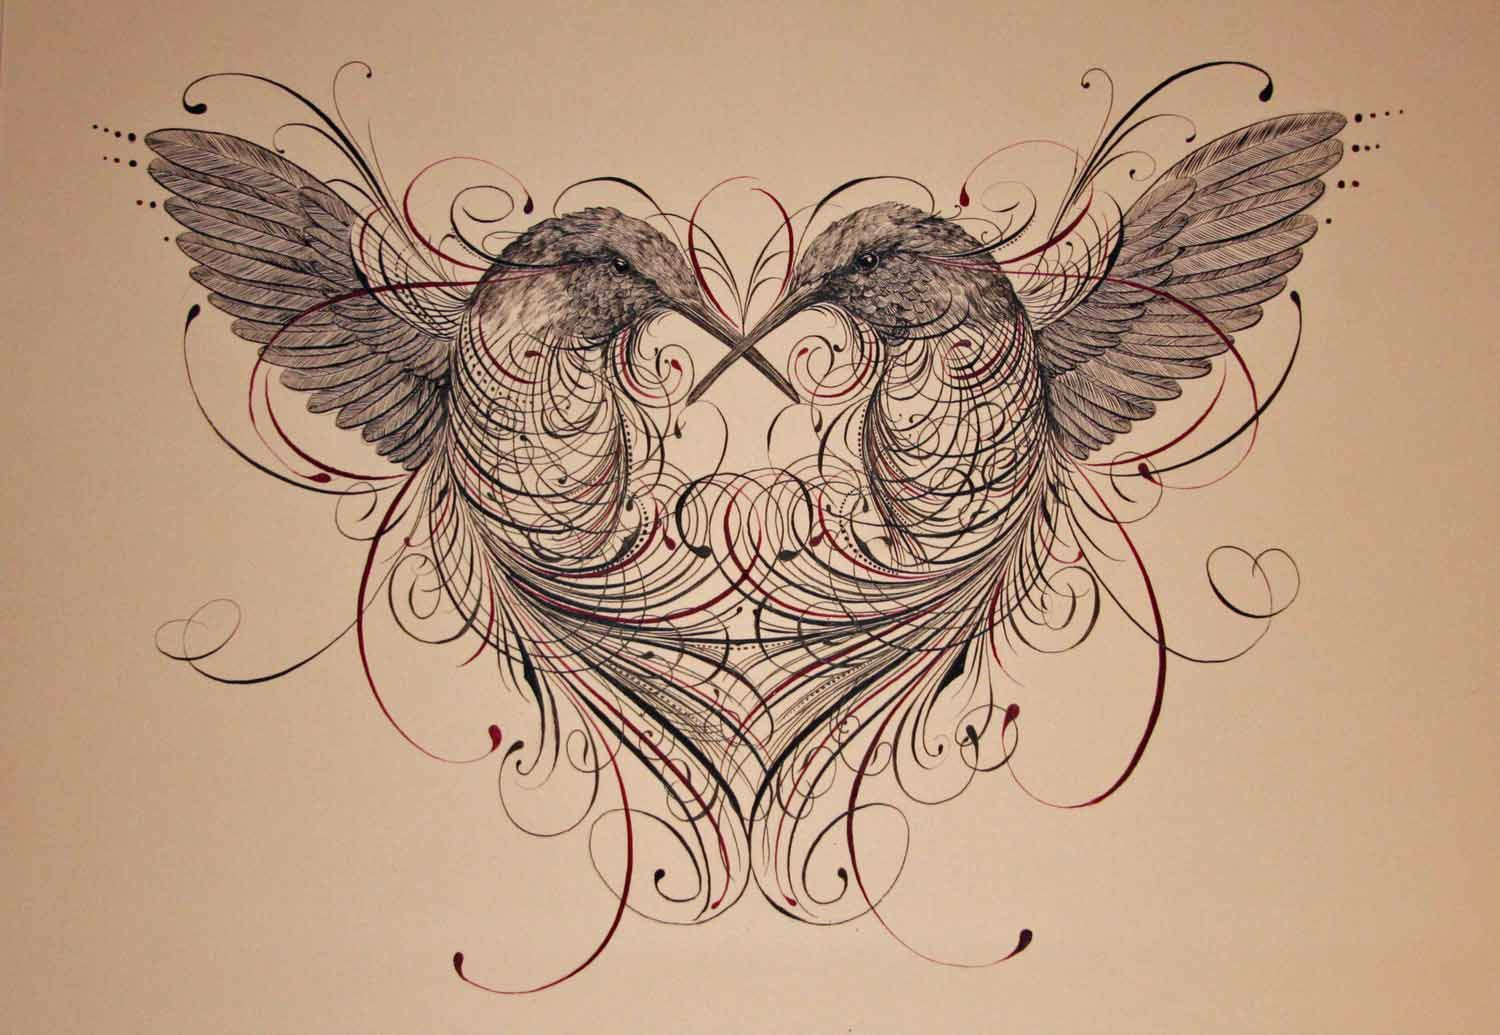 .this would be an awesome tattoo